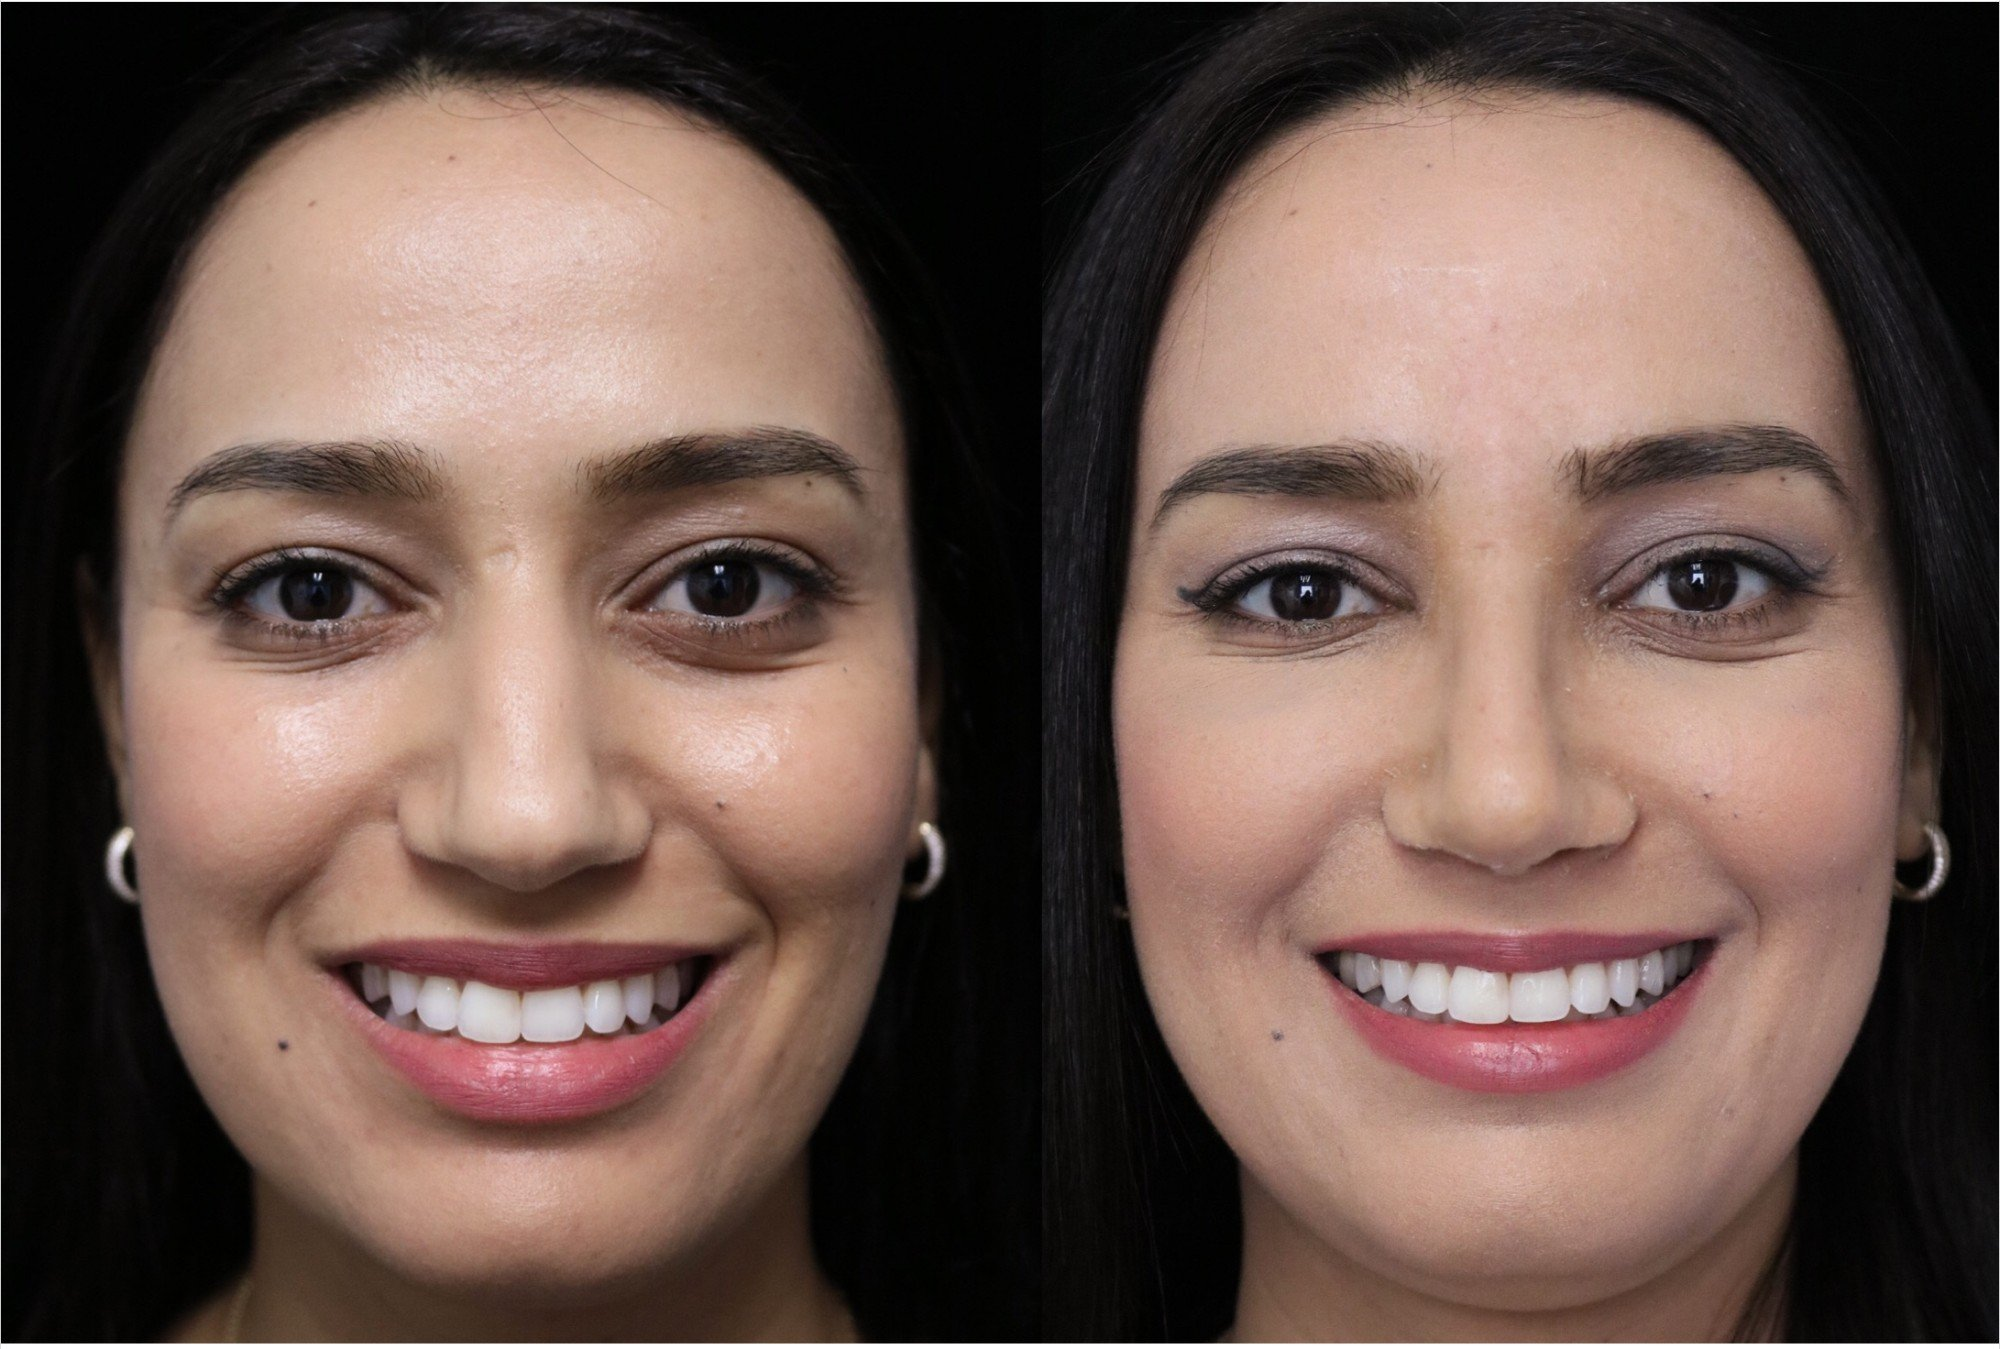 closed rhinoplasty before and after illustration of a woman with small dorsal hump